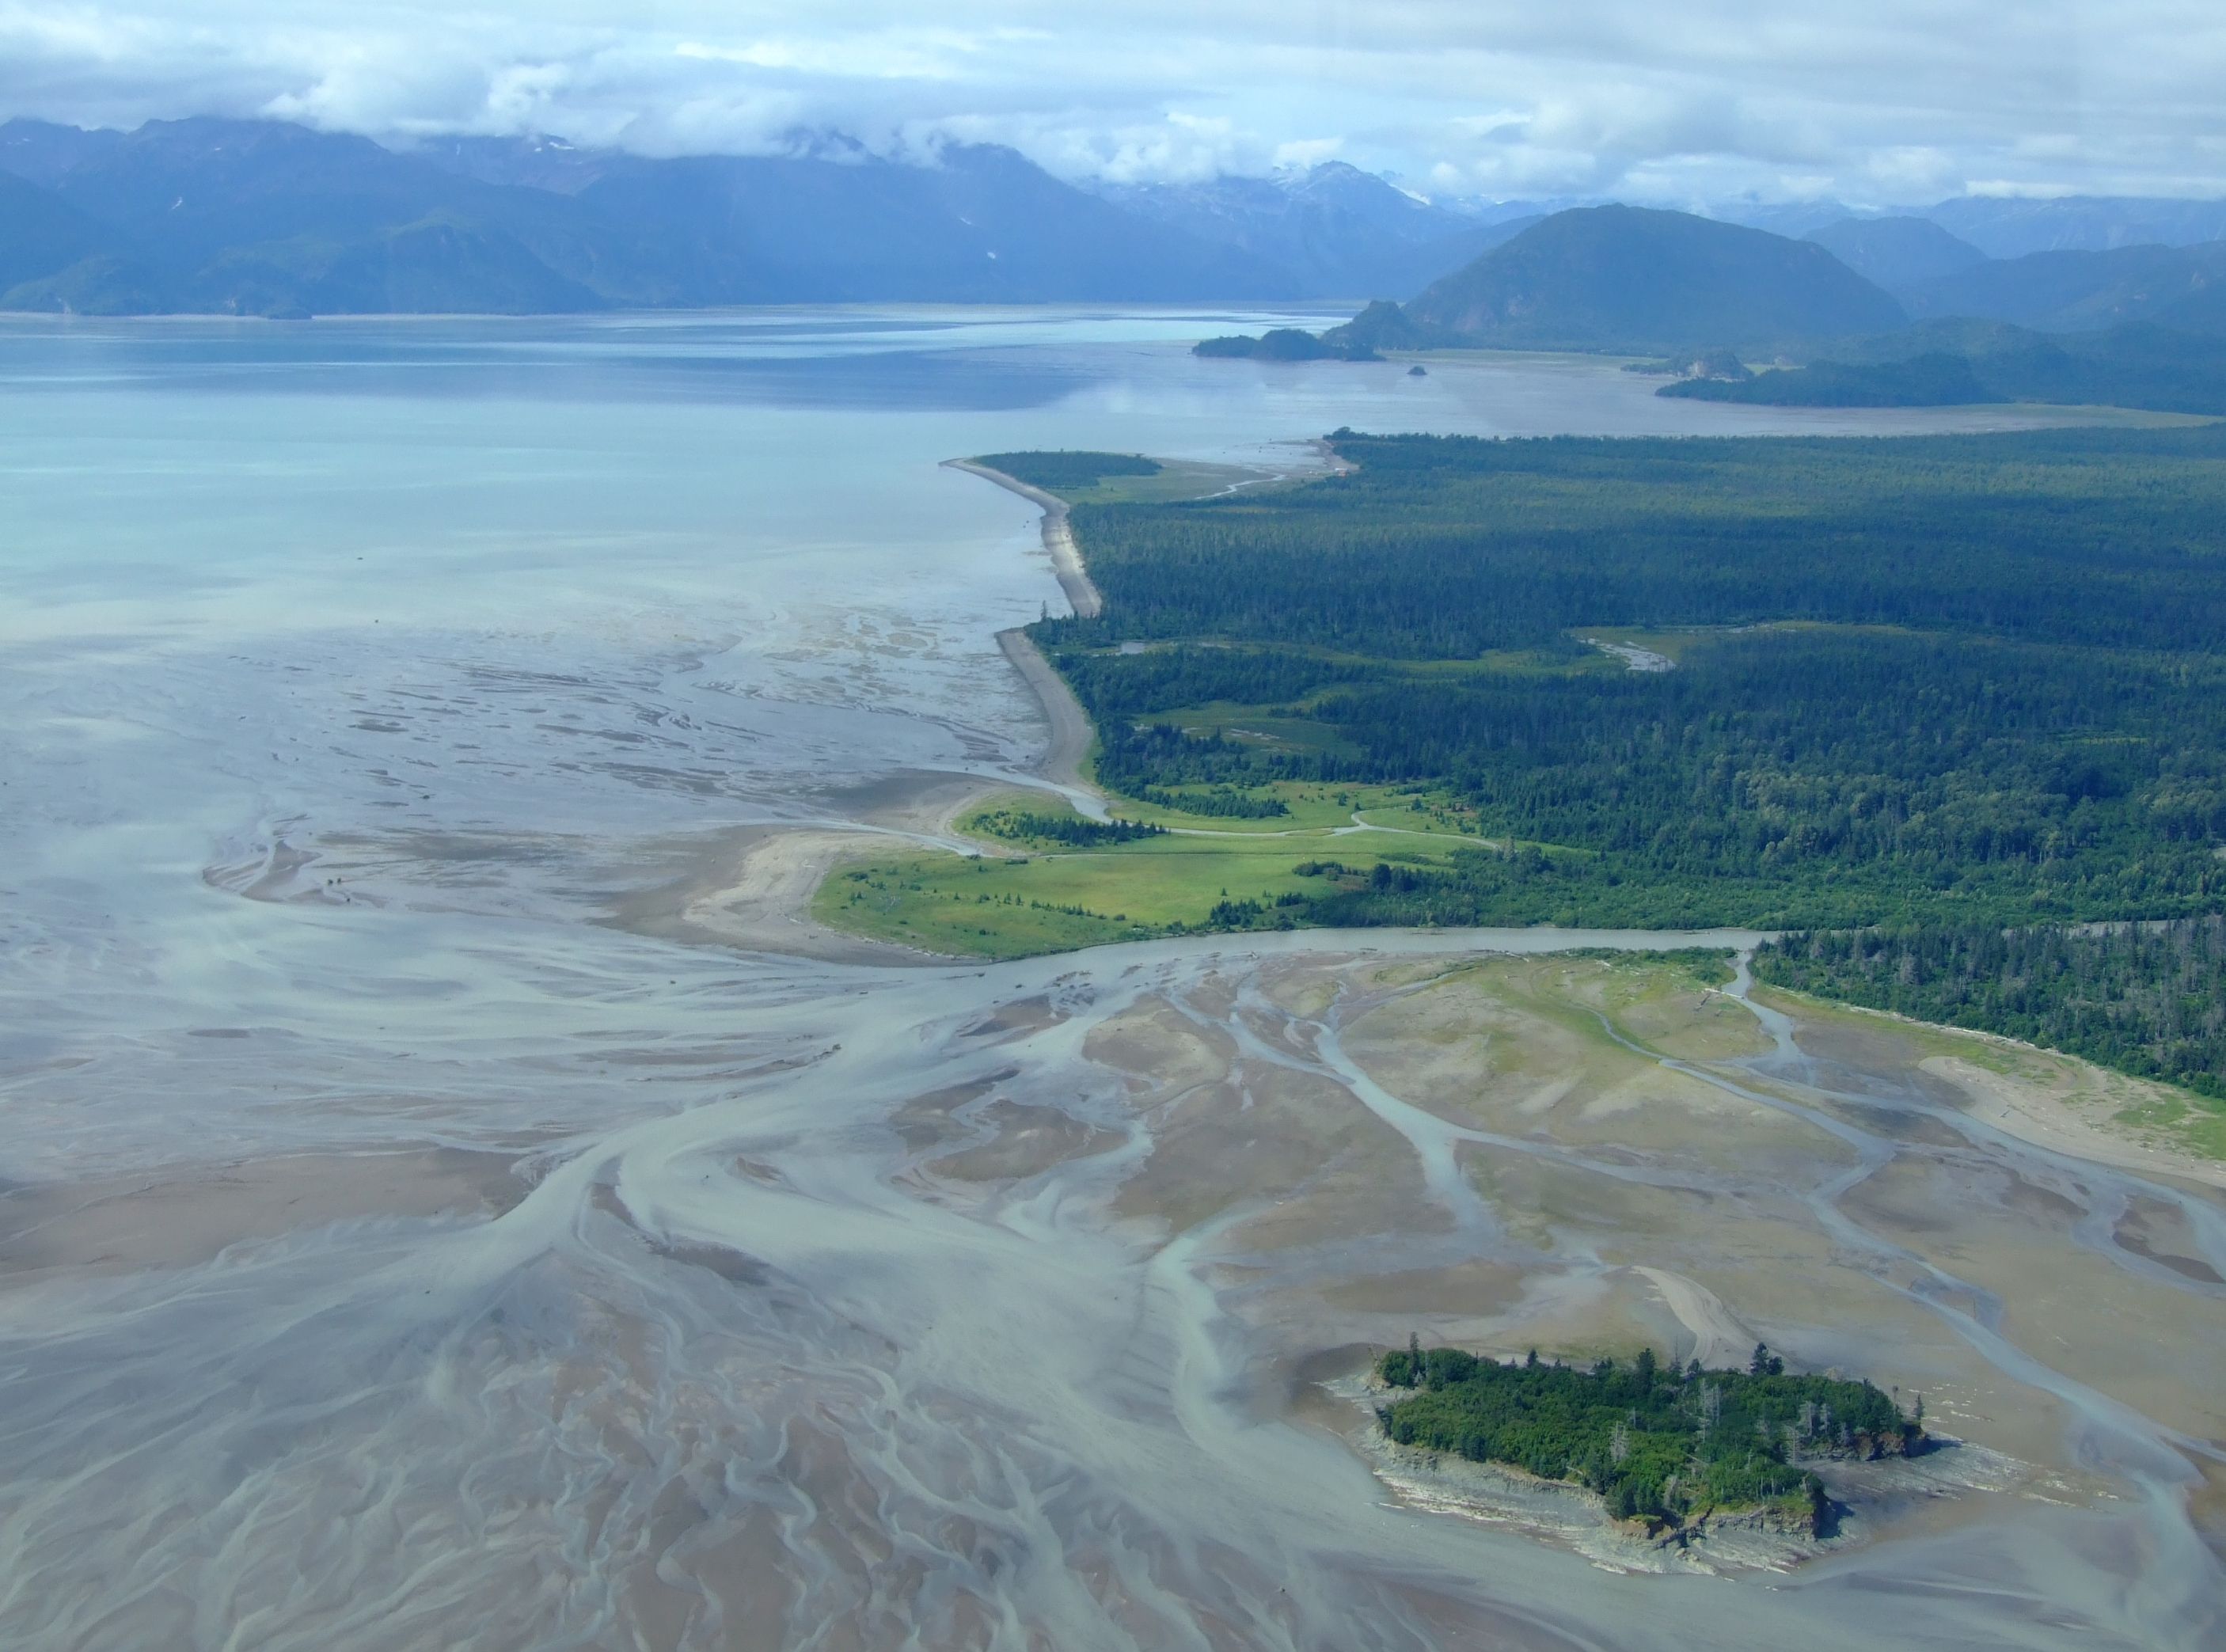 Returning to Cook Inlet as we left the Lake Clark National Park over the mouth of the Crescent River. Beyond the outflow is Tuxedni Bay.